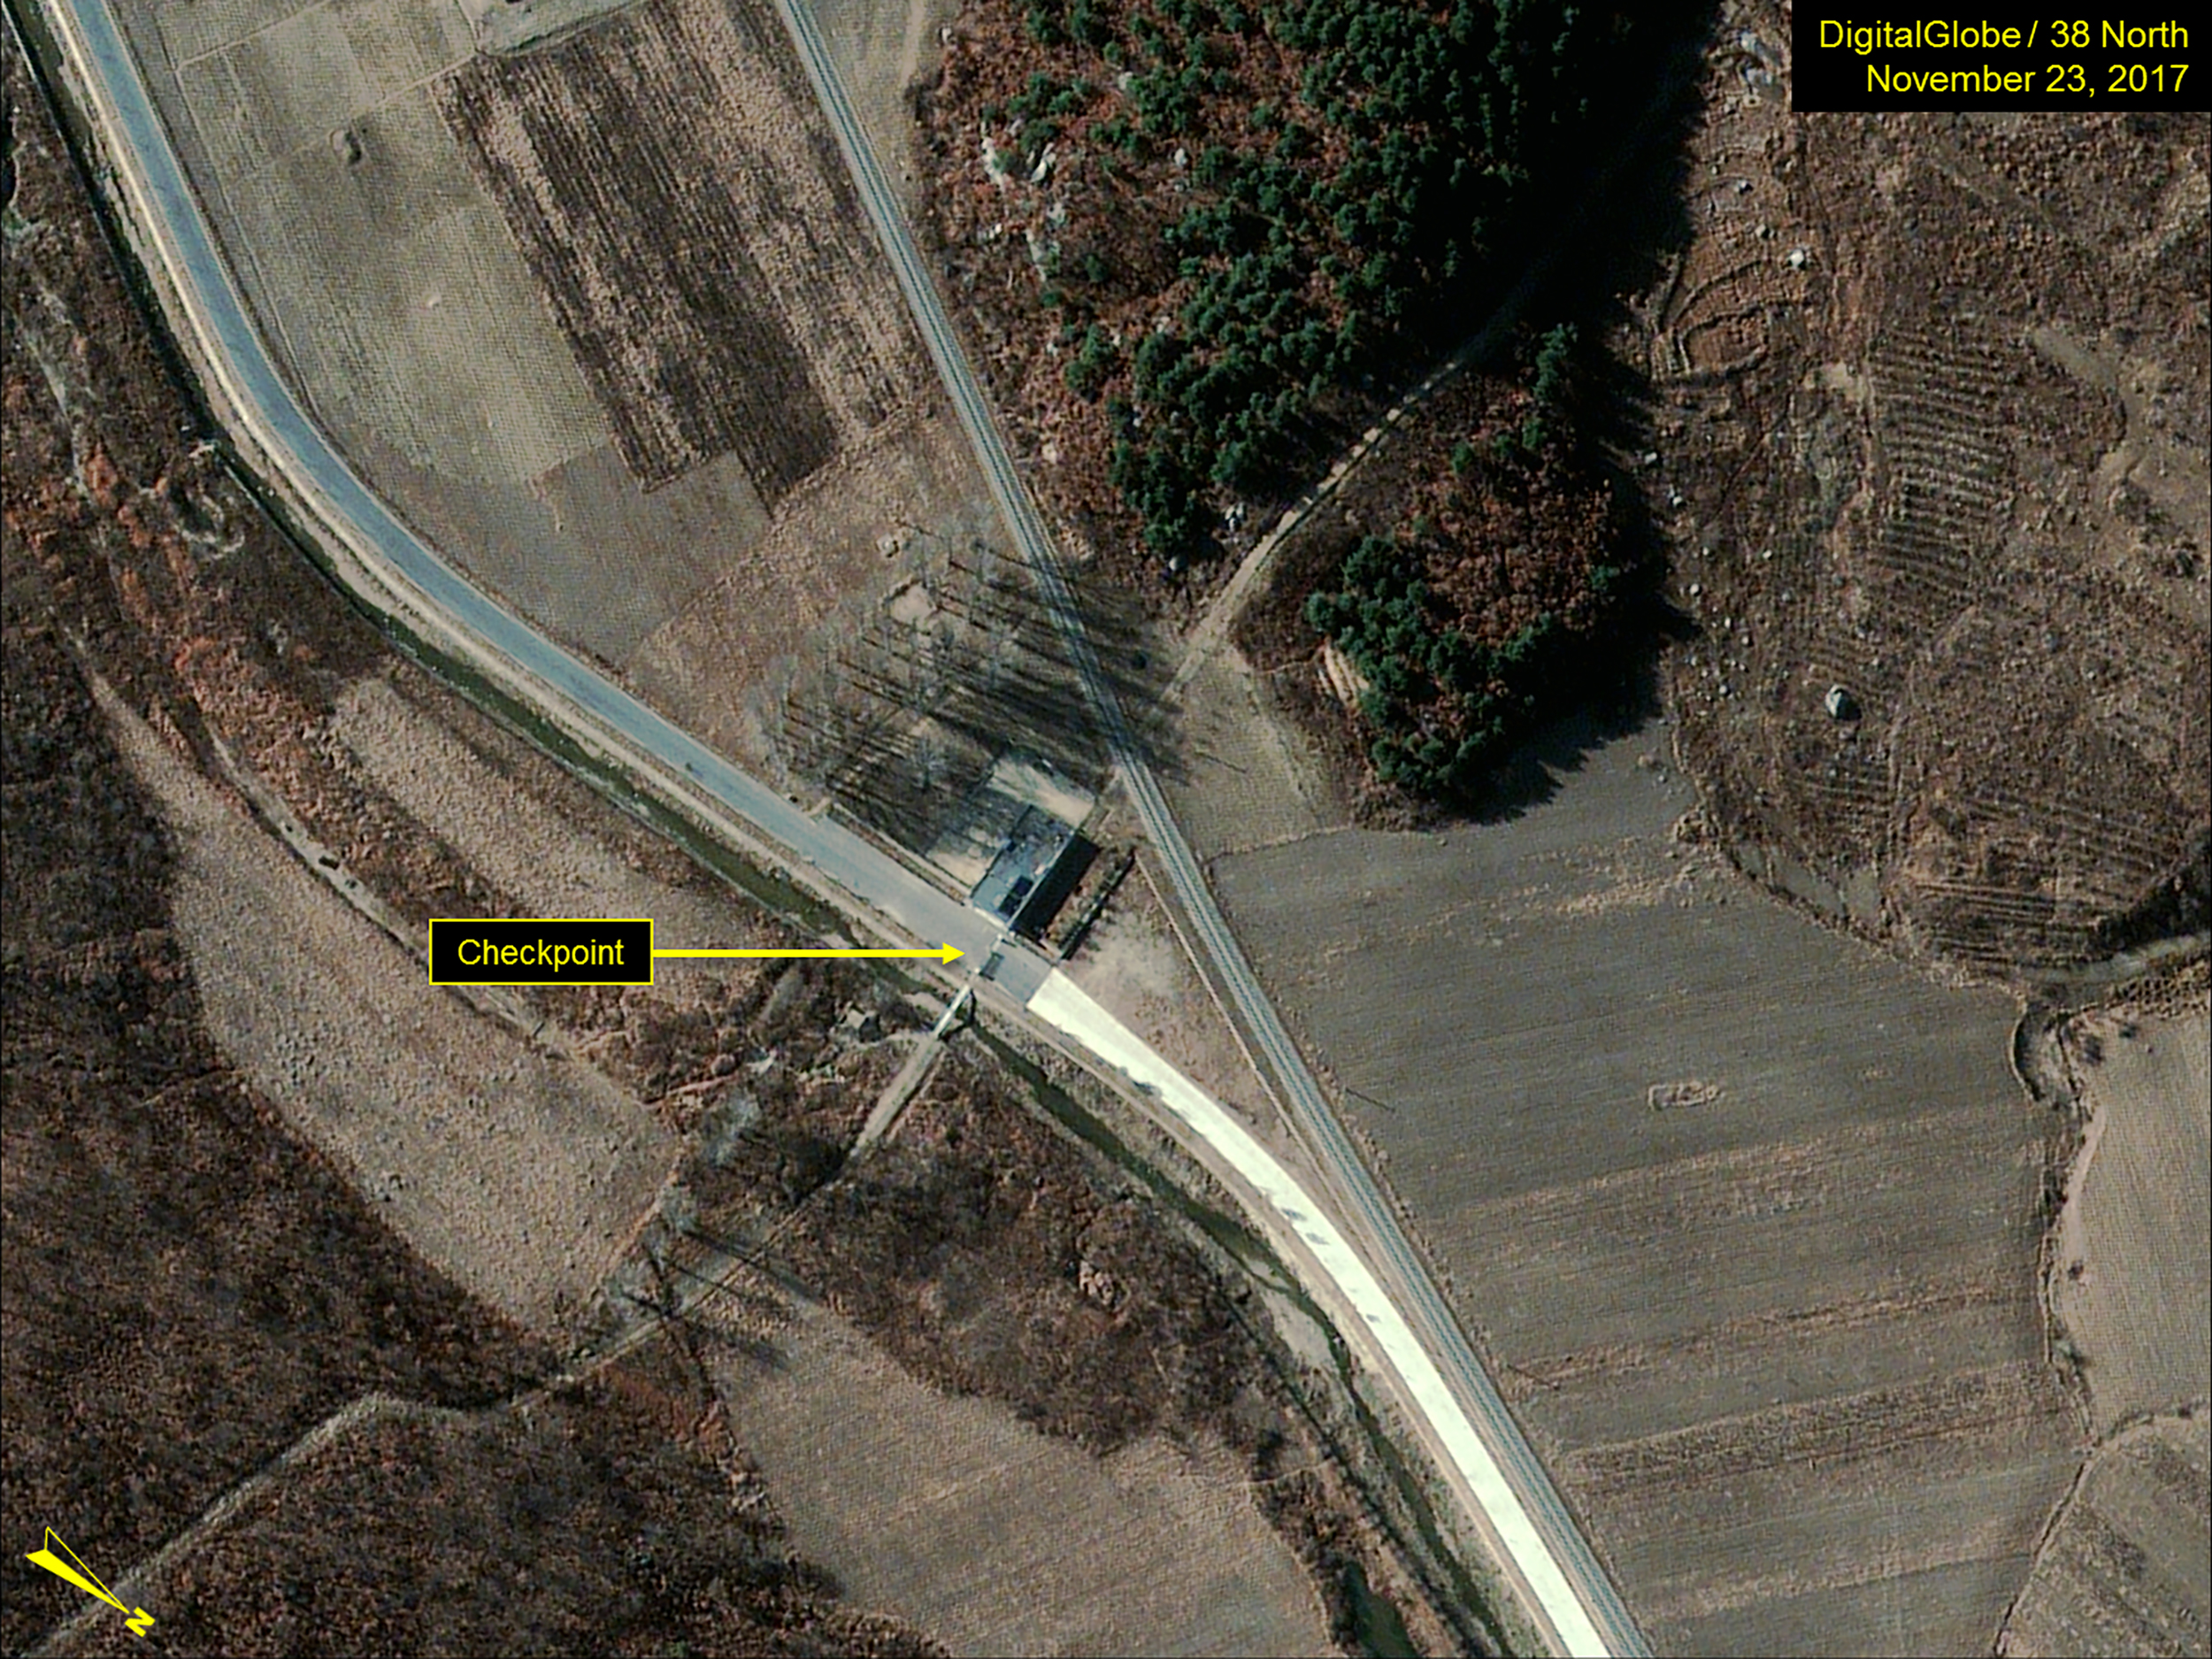 Close-up of the main entrance and checkpoint of the Sohae Satellite launch pad in North Korea on November 23, 2017.